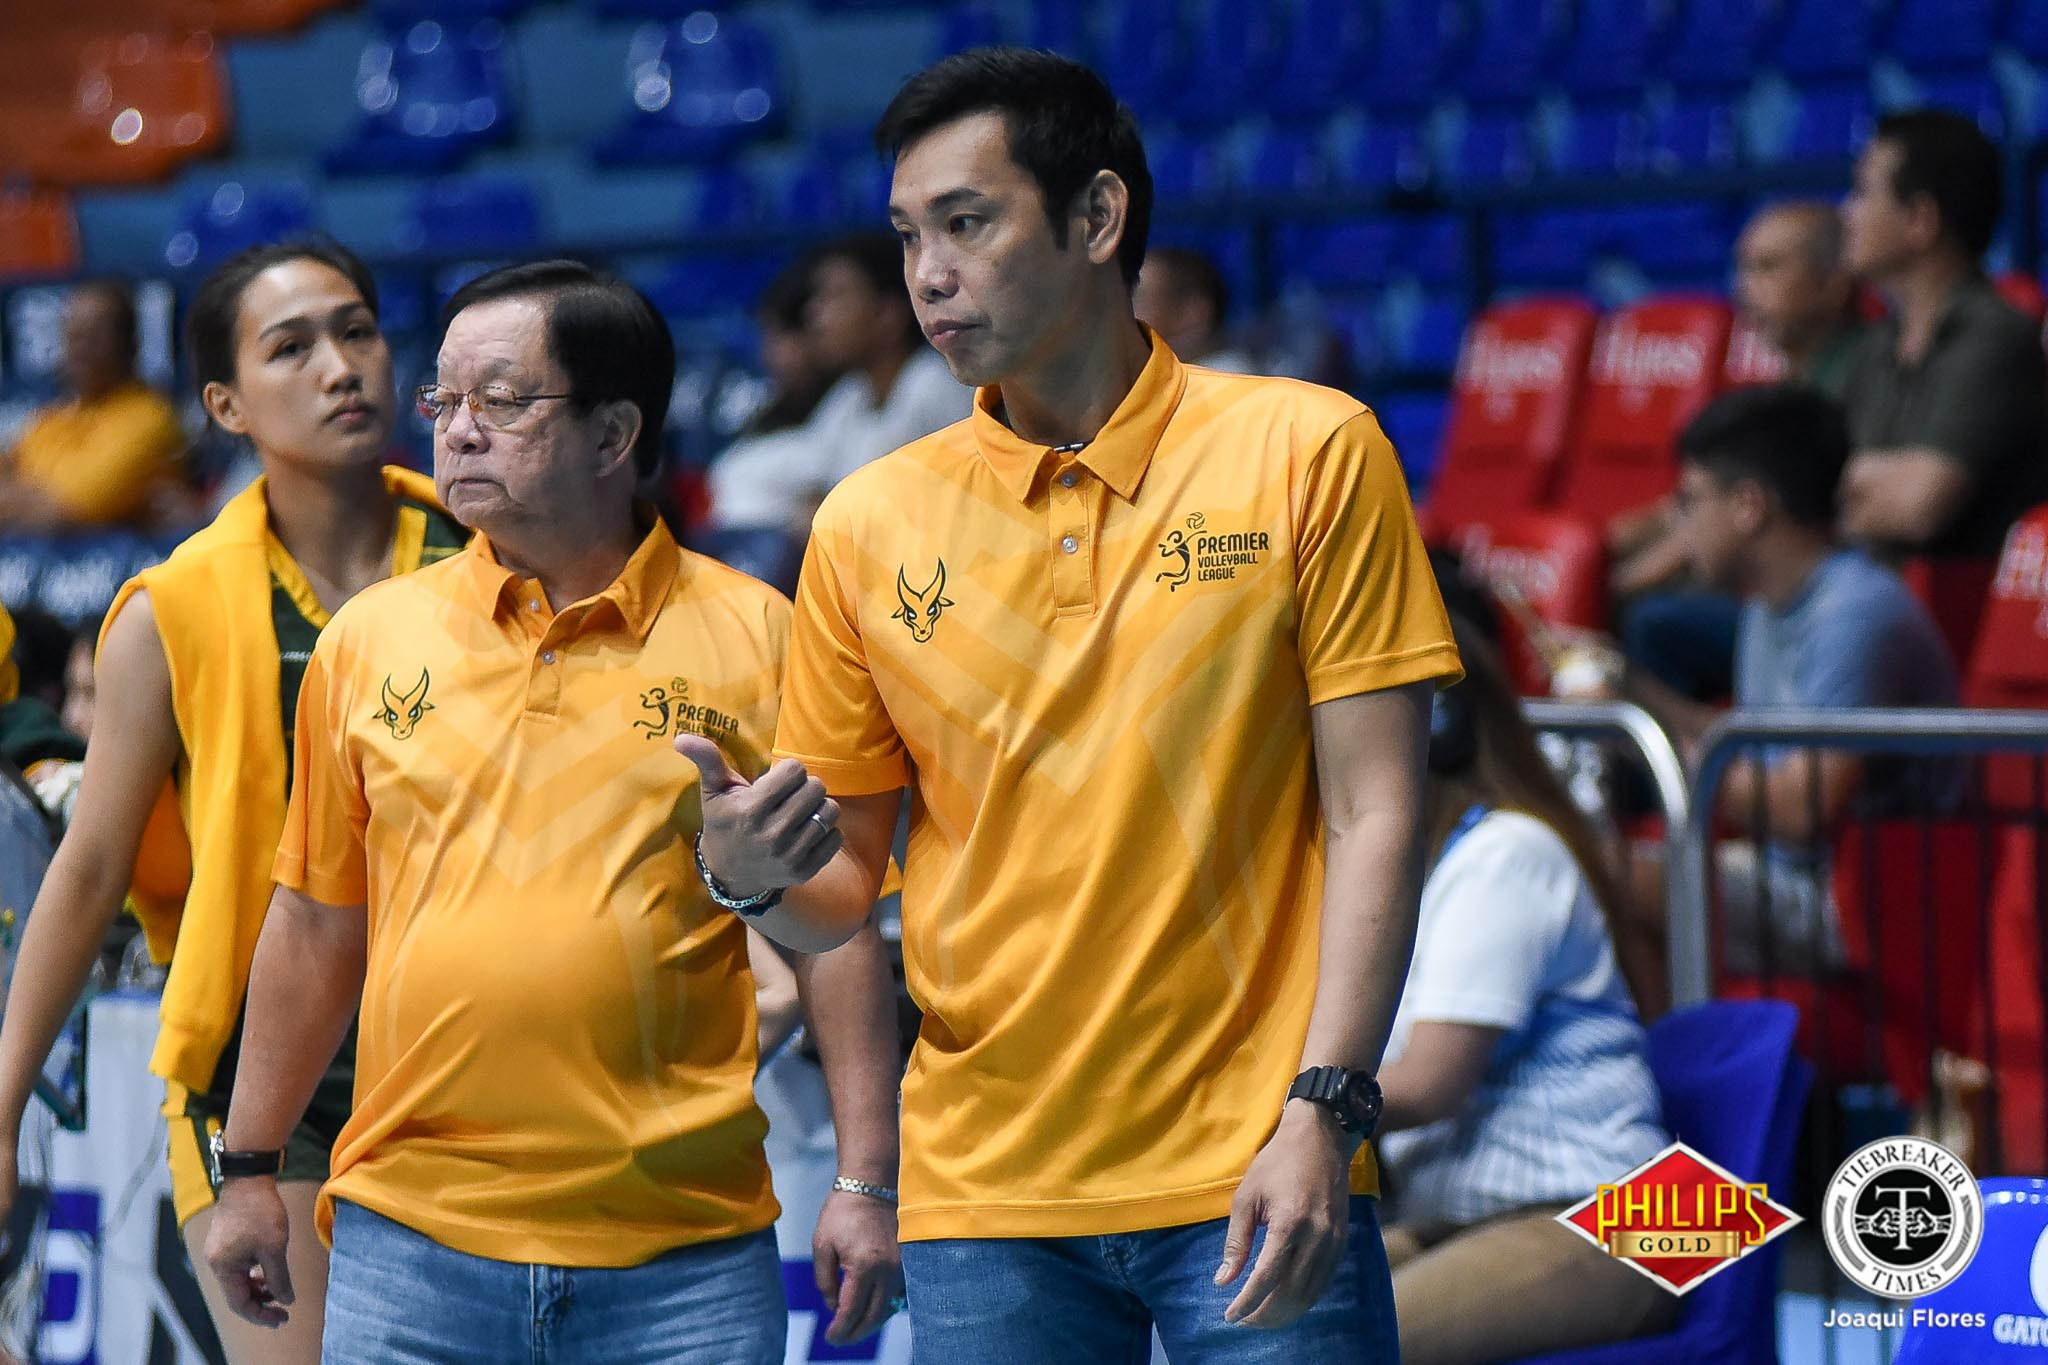 Tiebreaker Times George Pascua expects FEU to get stronger after another heartbreak FEU News PVL Volleyball  George Pascua FEU Women's Volleyball 2018 PVL Women's Collegiate Conference 2018 PVL Season